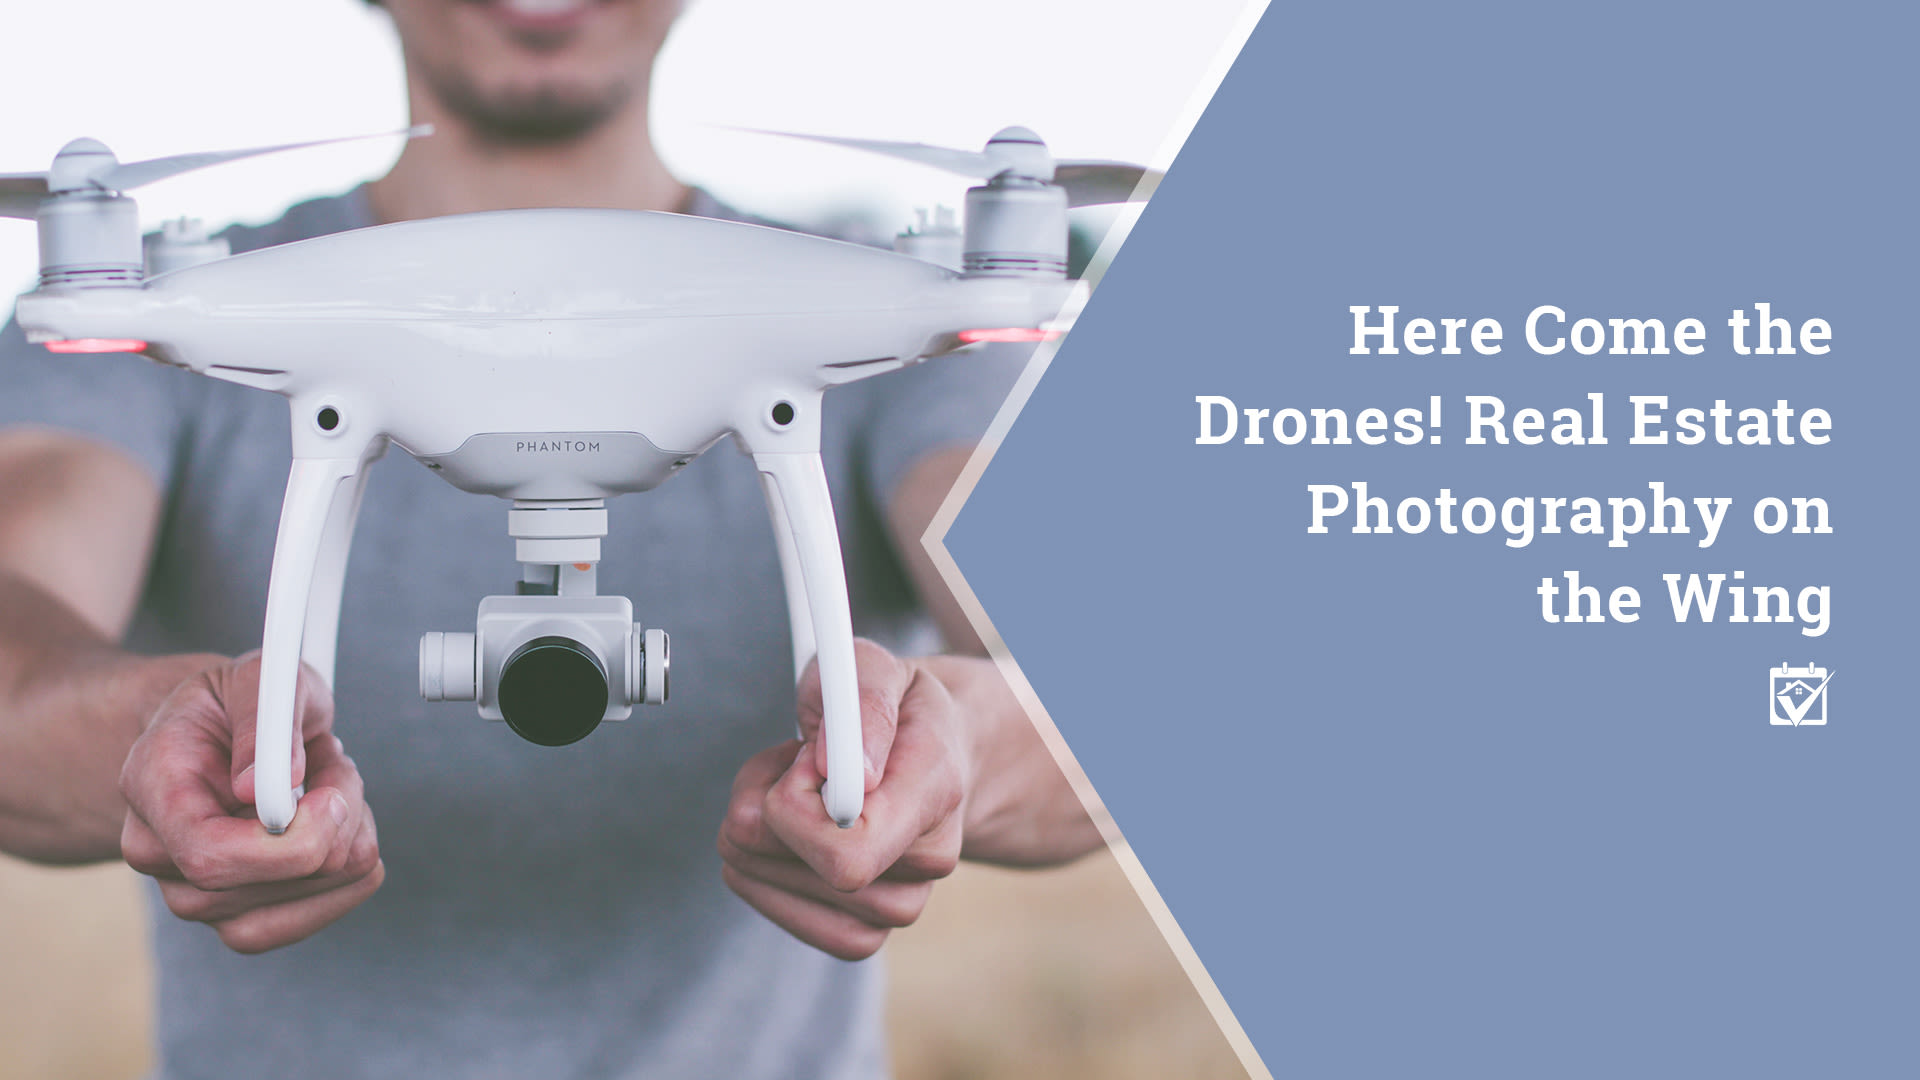 Here Come the Drones! Real Estate Photography on the Wing